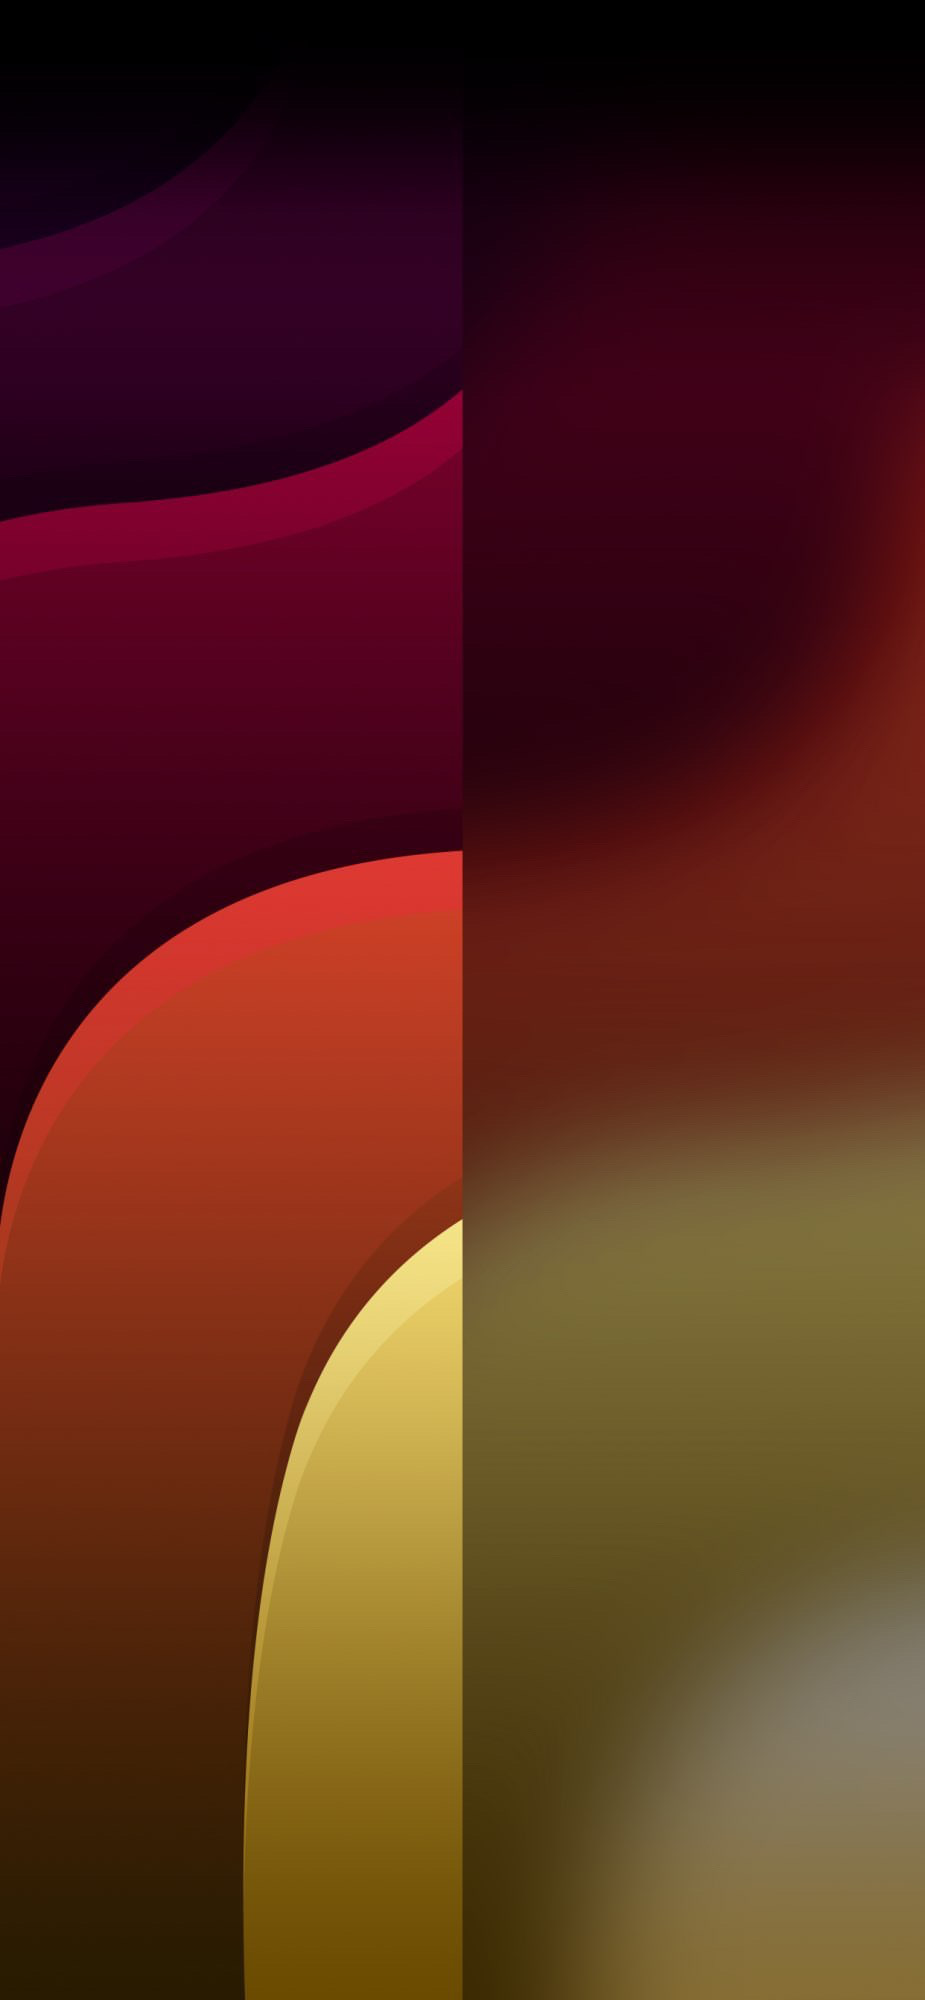 Waves Dual To Use With Ios 14 Widgets Wallpapers Central